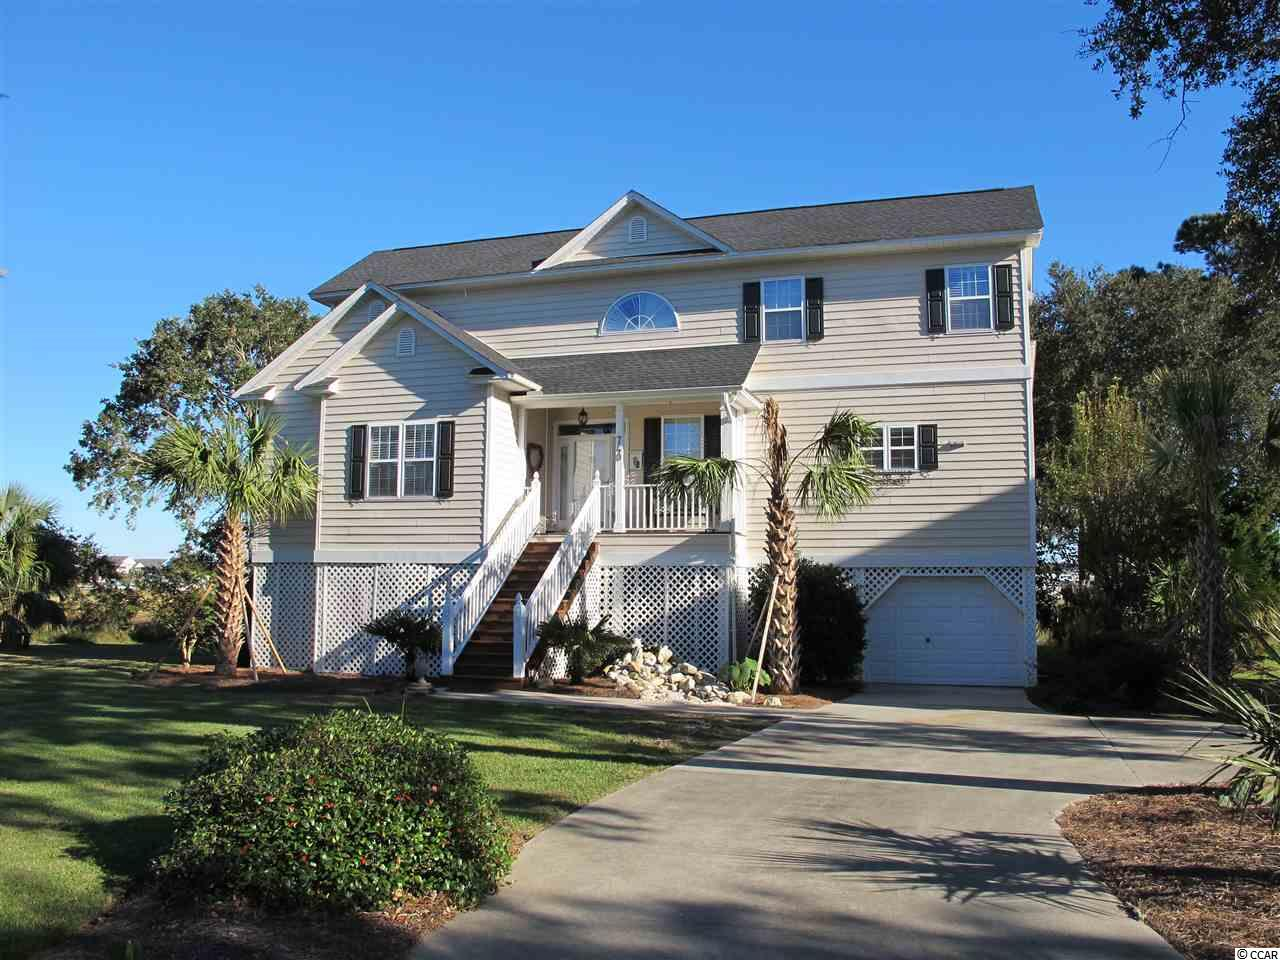 MAGNIFICENT Custom built home. Your clients will love this home and serenity yet so close to the beach.  740 Elizabeth Drive @ SOUTH MARSH. This is a laid back and hidden treasure community located in Garden City Beach. Here you will find spanning marsh views that are spectacular day and night. Sit out on the porches and watch the wildlife and the harmony of the birds singing. Take a short golf cart ride to the beach.   This home is eloquent that flows so well. Featuring hardwood floors, plantation shutters throughout, new kitchen countertop/backsplash with premium exotic Brazillian quartzite. Recently painted & new light fixtures foyer and dining room. Outdoor shower & more features on the detail list. New landscaping with palm trees installed Sept 2018.  New roof 2016.  Home is also being sold furnished except for some antique family items that don't convey. Furniture was all purchased in 2015 and has had limited use.  See list of new upgrades and home improvements to this spectacular home.  Also featuring:  an elevator, and self contained living quarters downstairs on the ground floor with kitchen. Great for mother-in-law suite or keeping your kayaks and more.  Another feature transferable terminex bond & Rainbird irrigation system.  Experience the Marsh views will take your breath away. Oversized deck and screened porch to relax and view the beautiful sunrises and rainbow skies.  A beach & bird lovers delight.  Come see this home first on your list and you will fall in love with the home and features and community.  One more feature comes with 2016 Golf Cart for touring the beach,  shopping, and more adventures.   Home Warranty included with the purchase of the home.